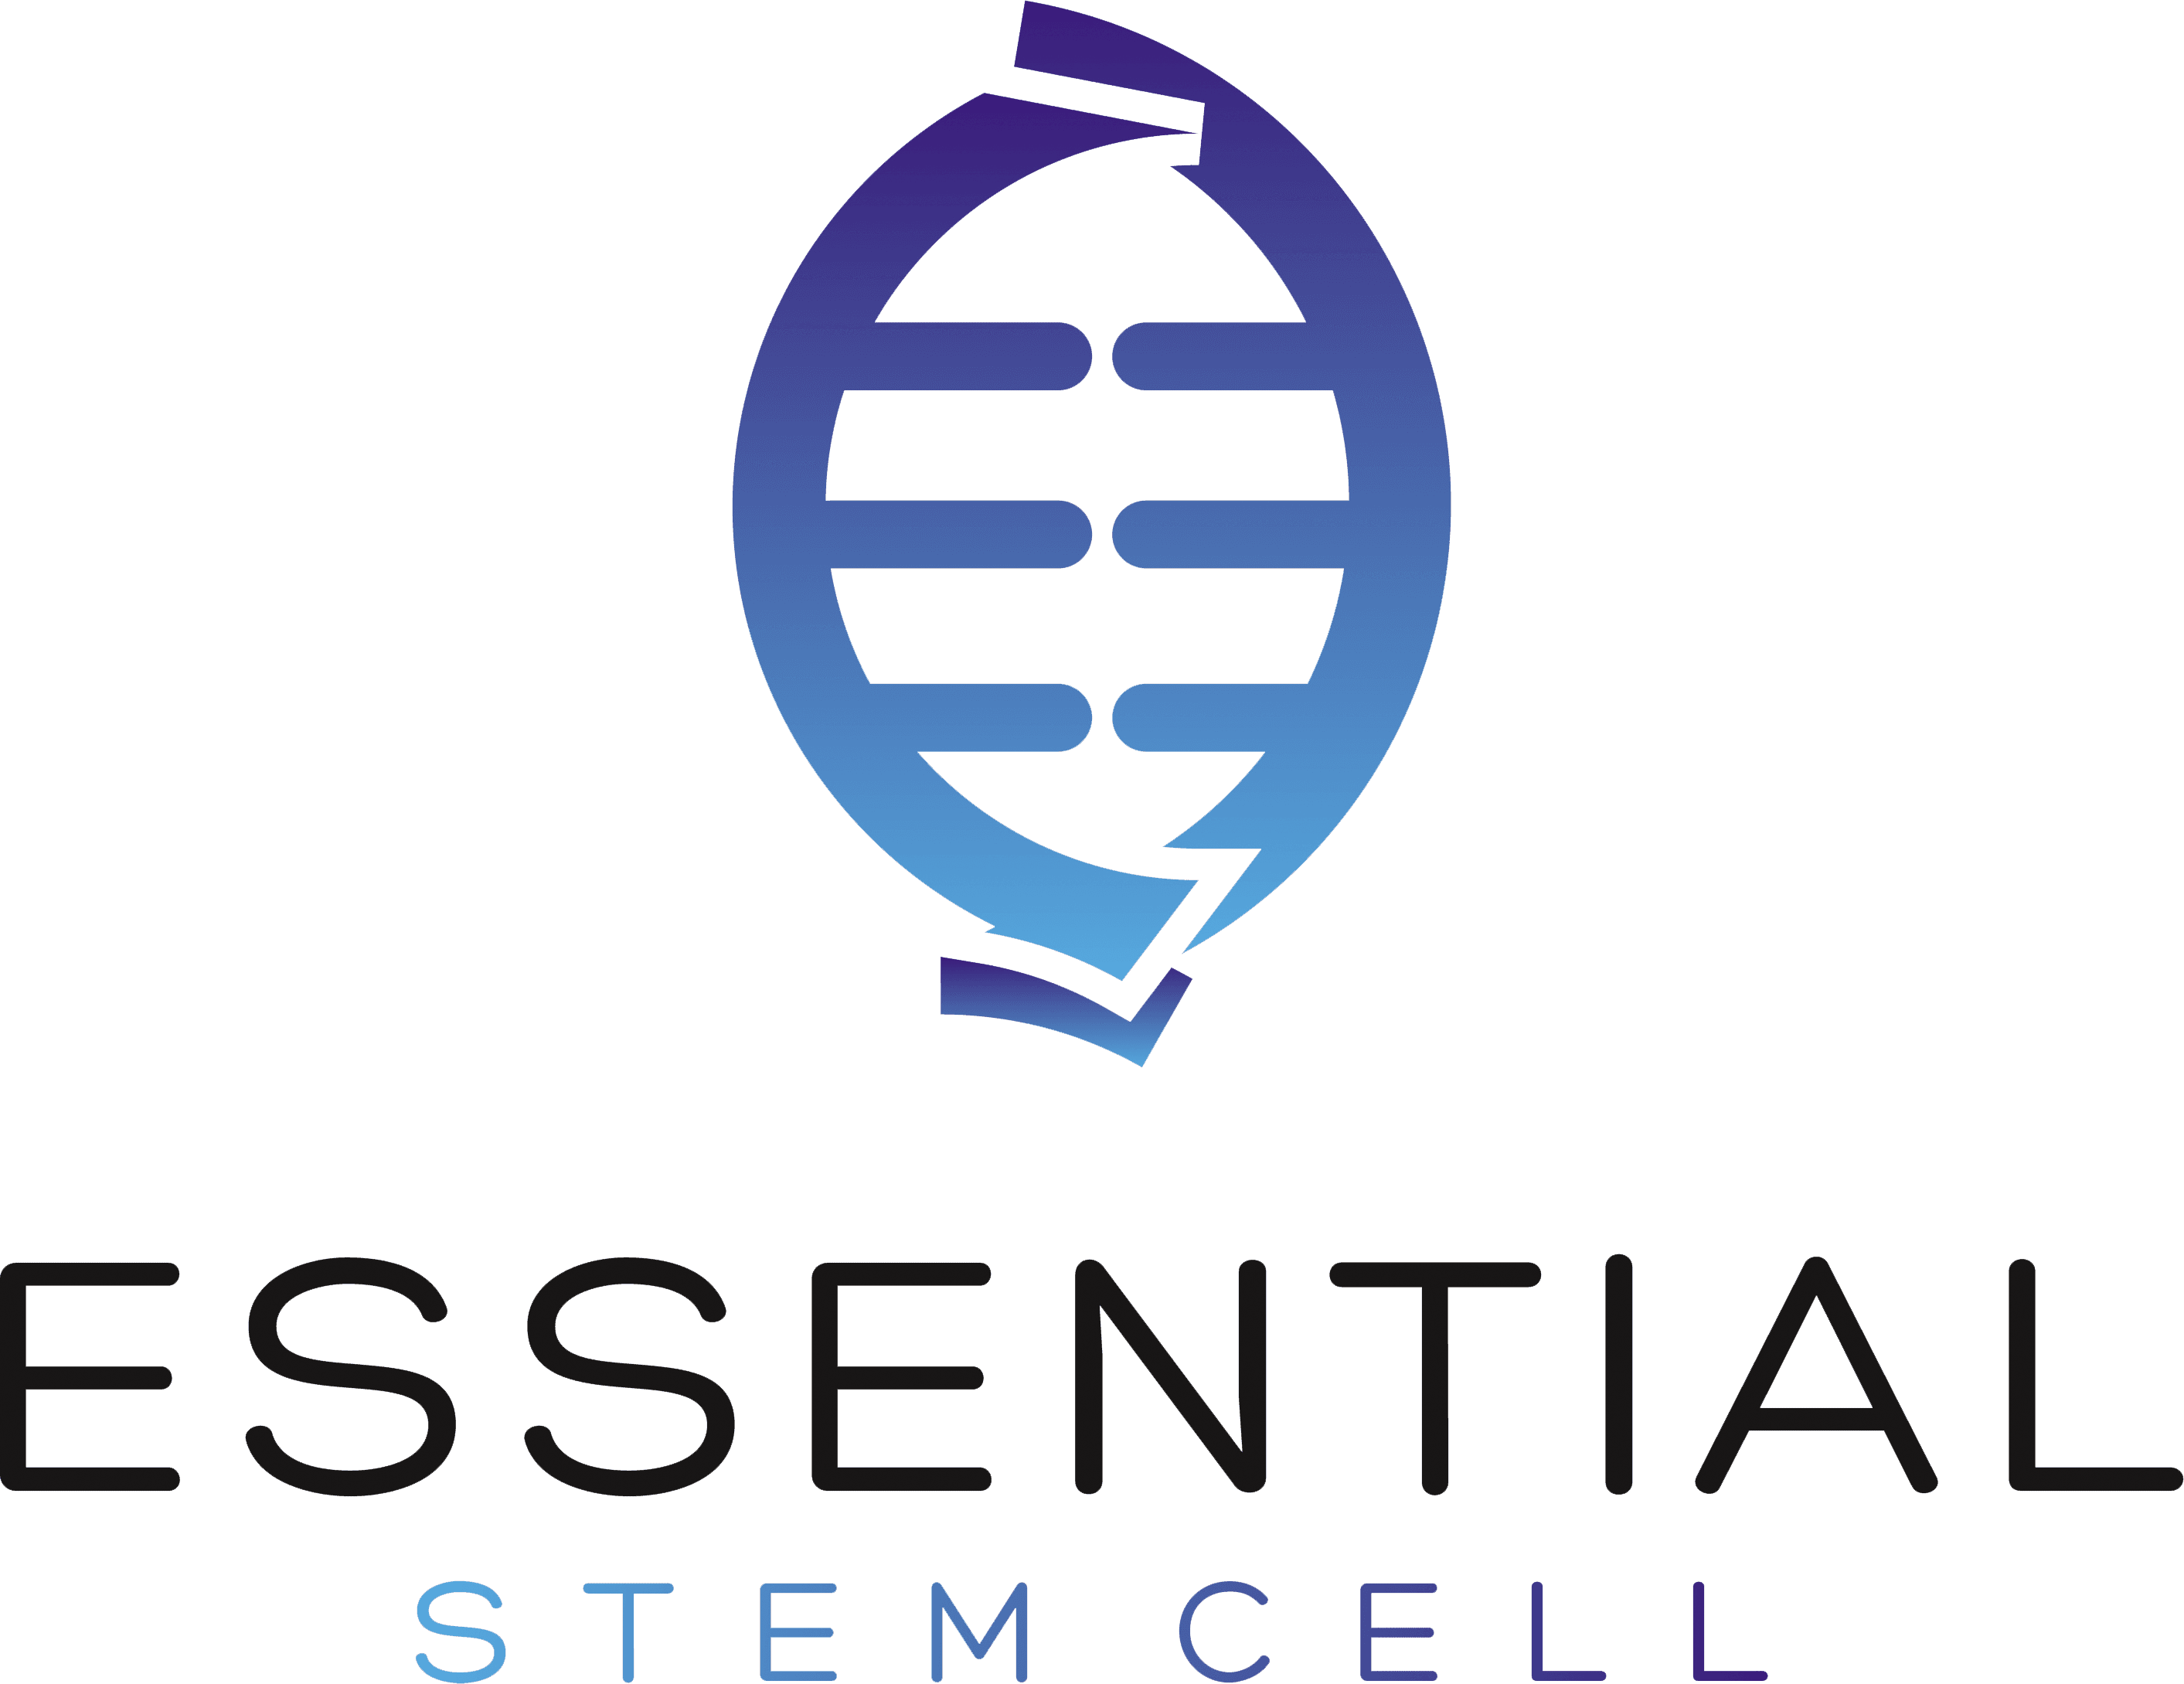 Essential Stem Cell Logo